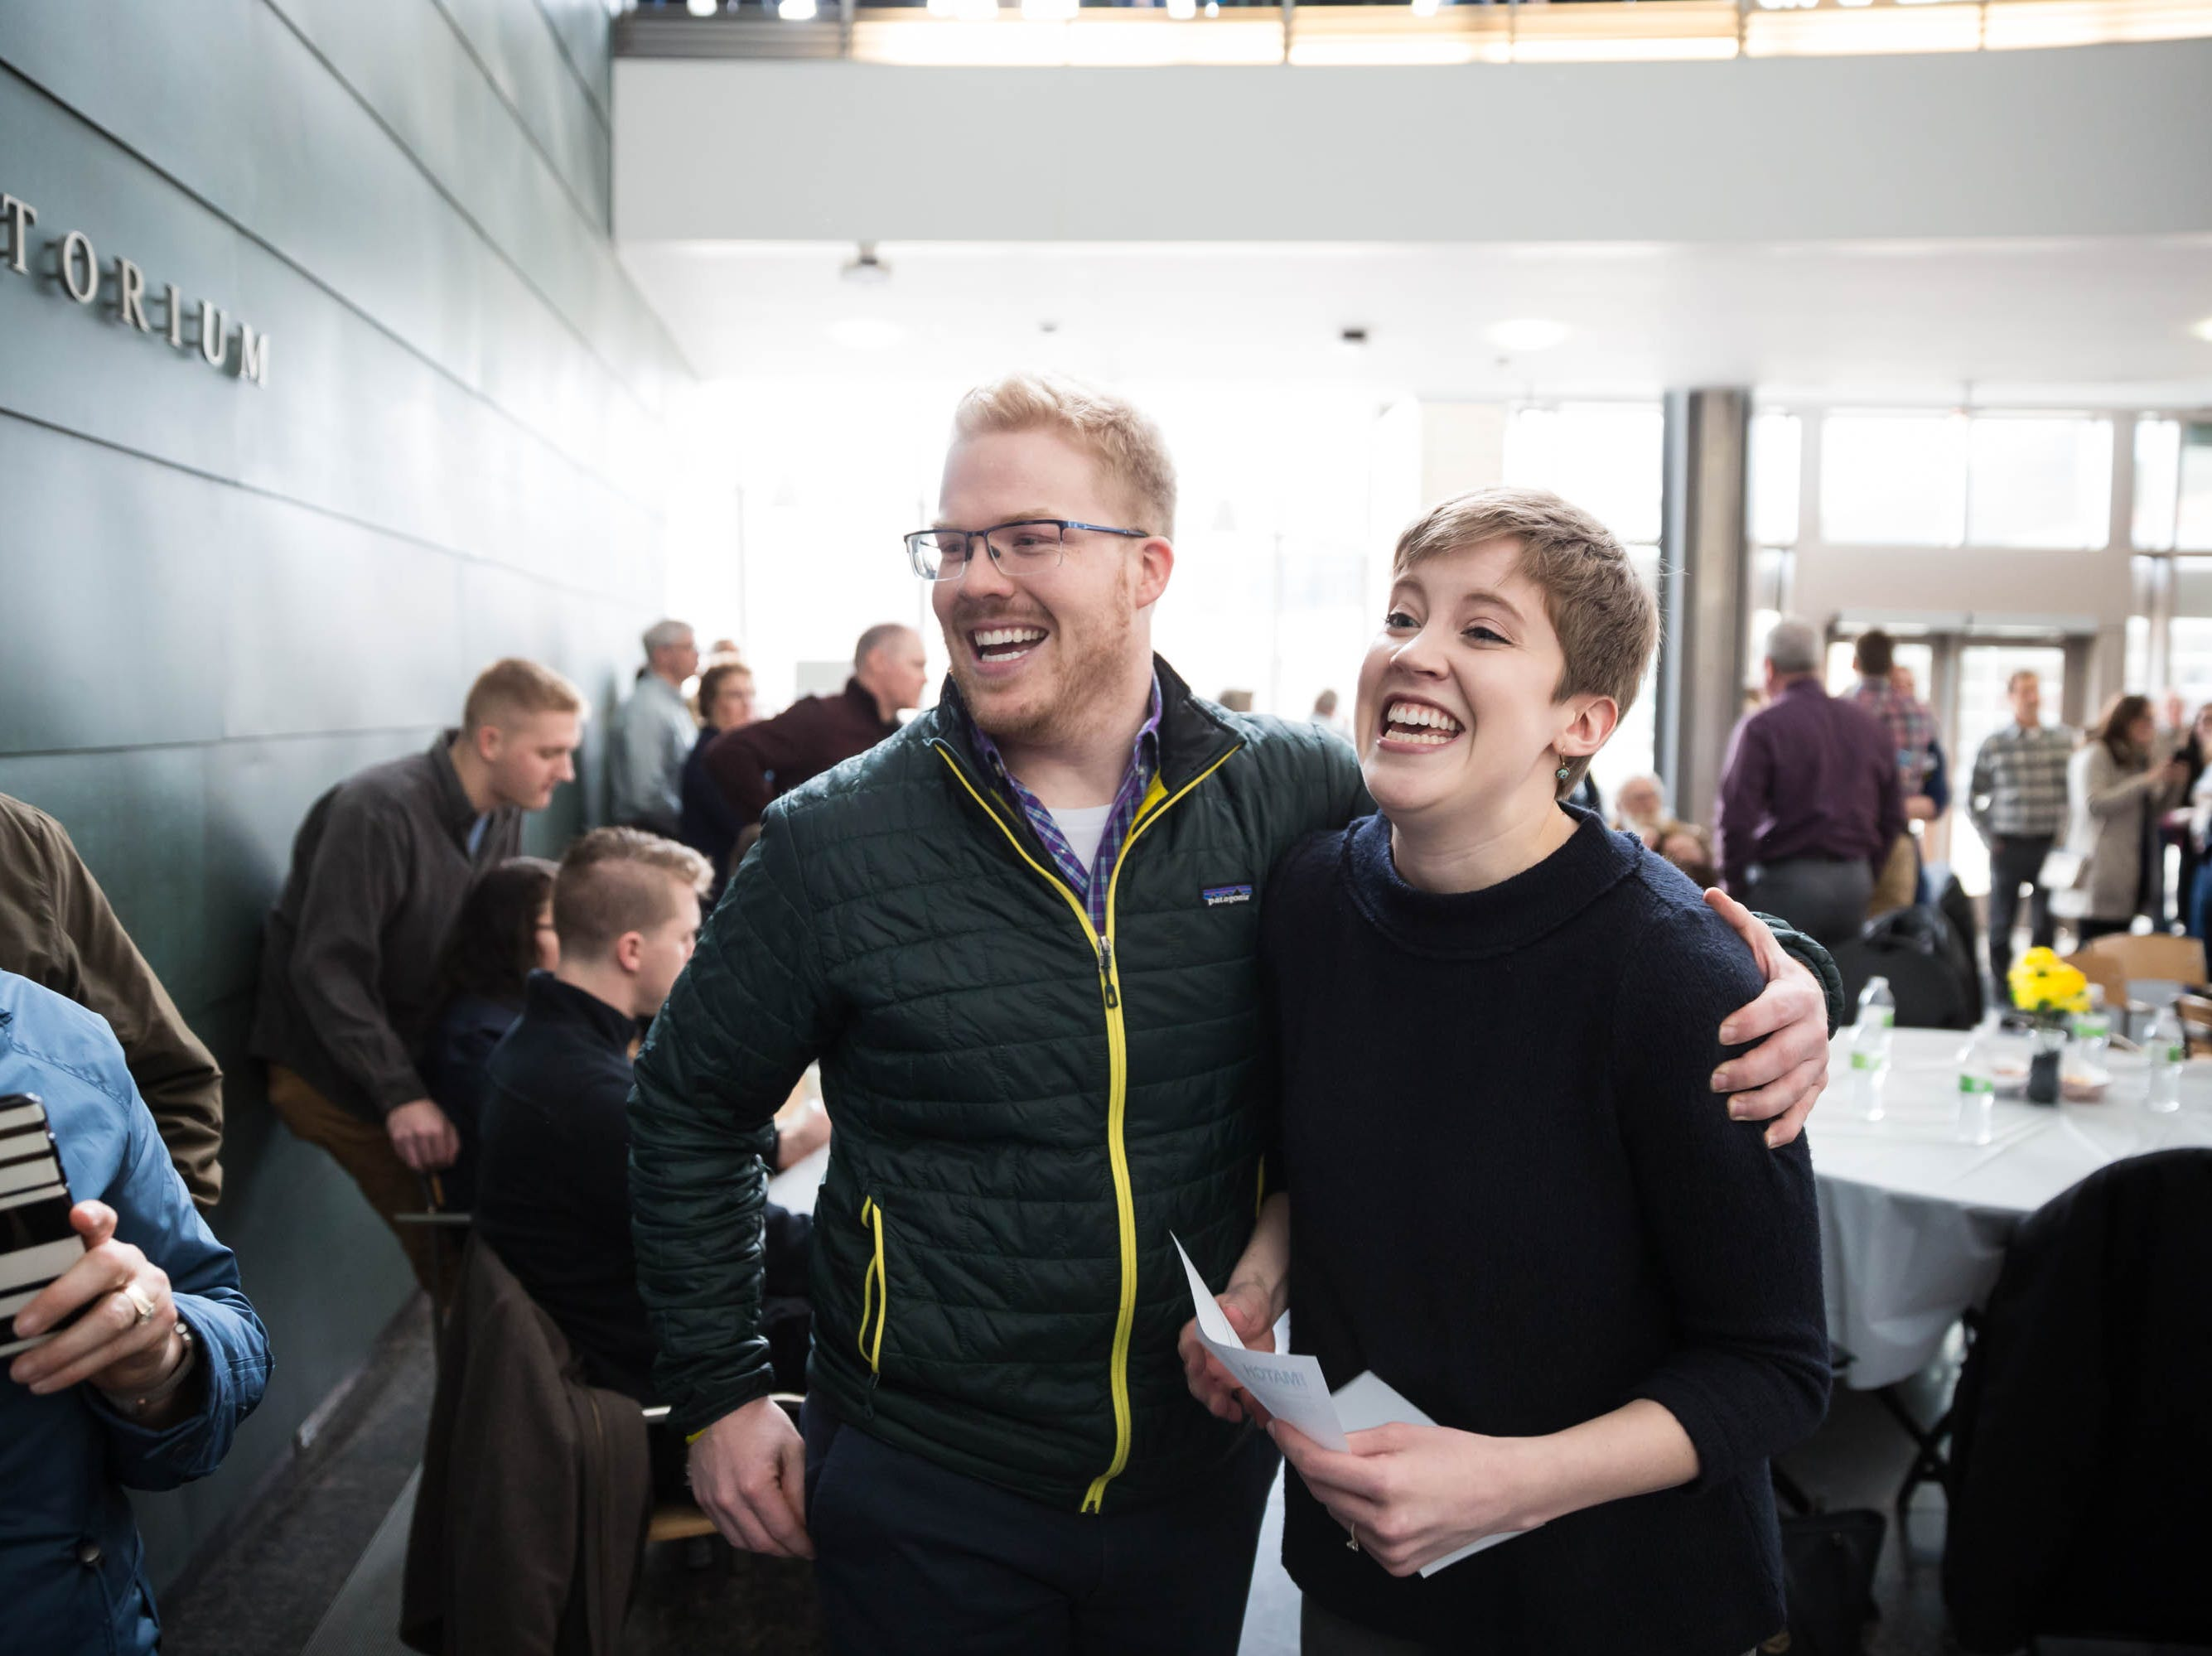 Sarah Floden, right, celebrates getting matched with the University of Wisconsin with her fiancée Patrick Kolker during Match Day at UIHC in Iowa City on Friday, March 15, 2019.